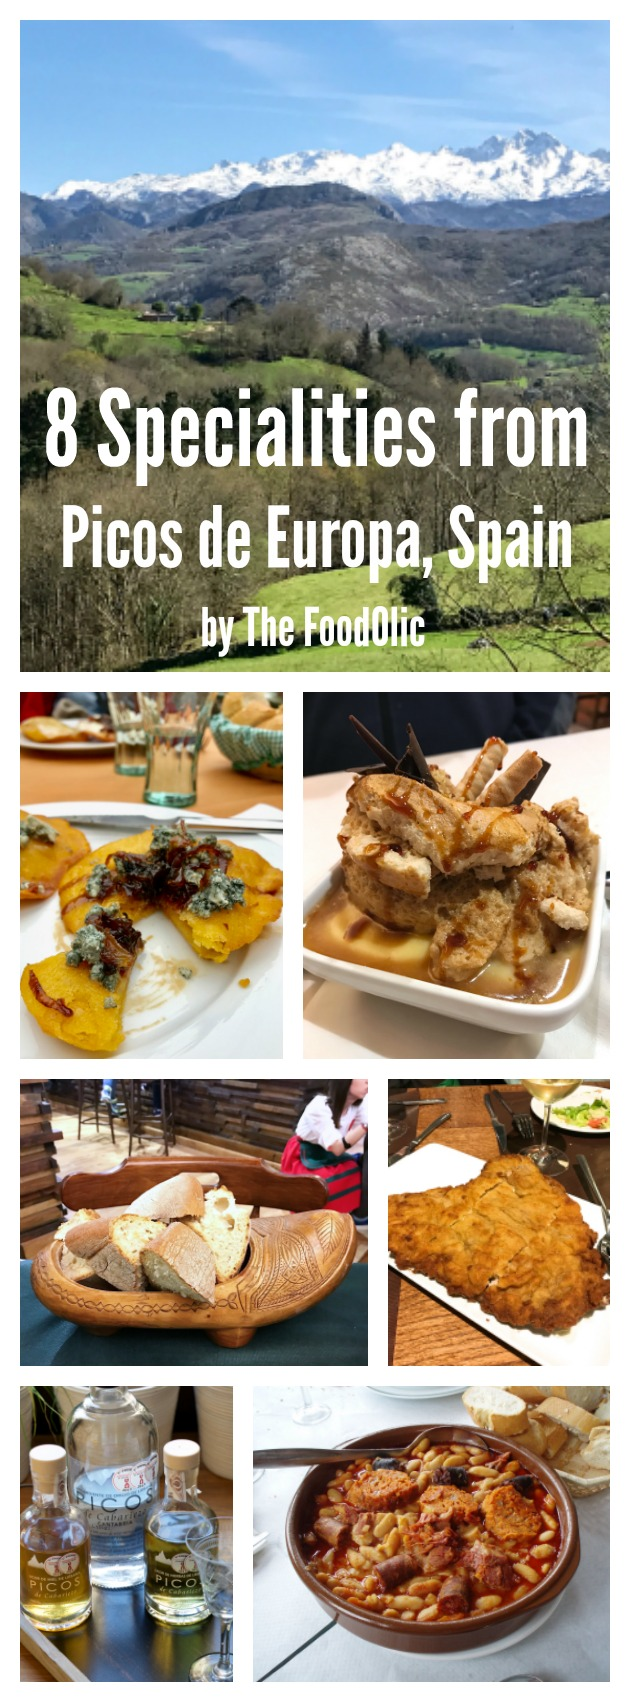 gastronomy of picos de europa, spain